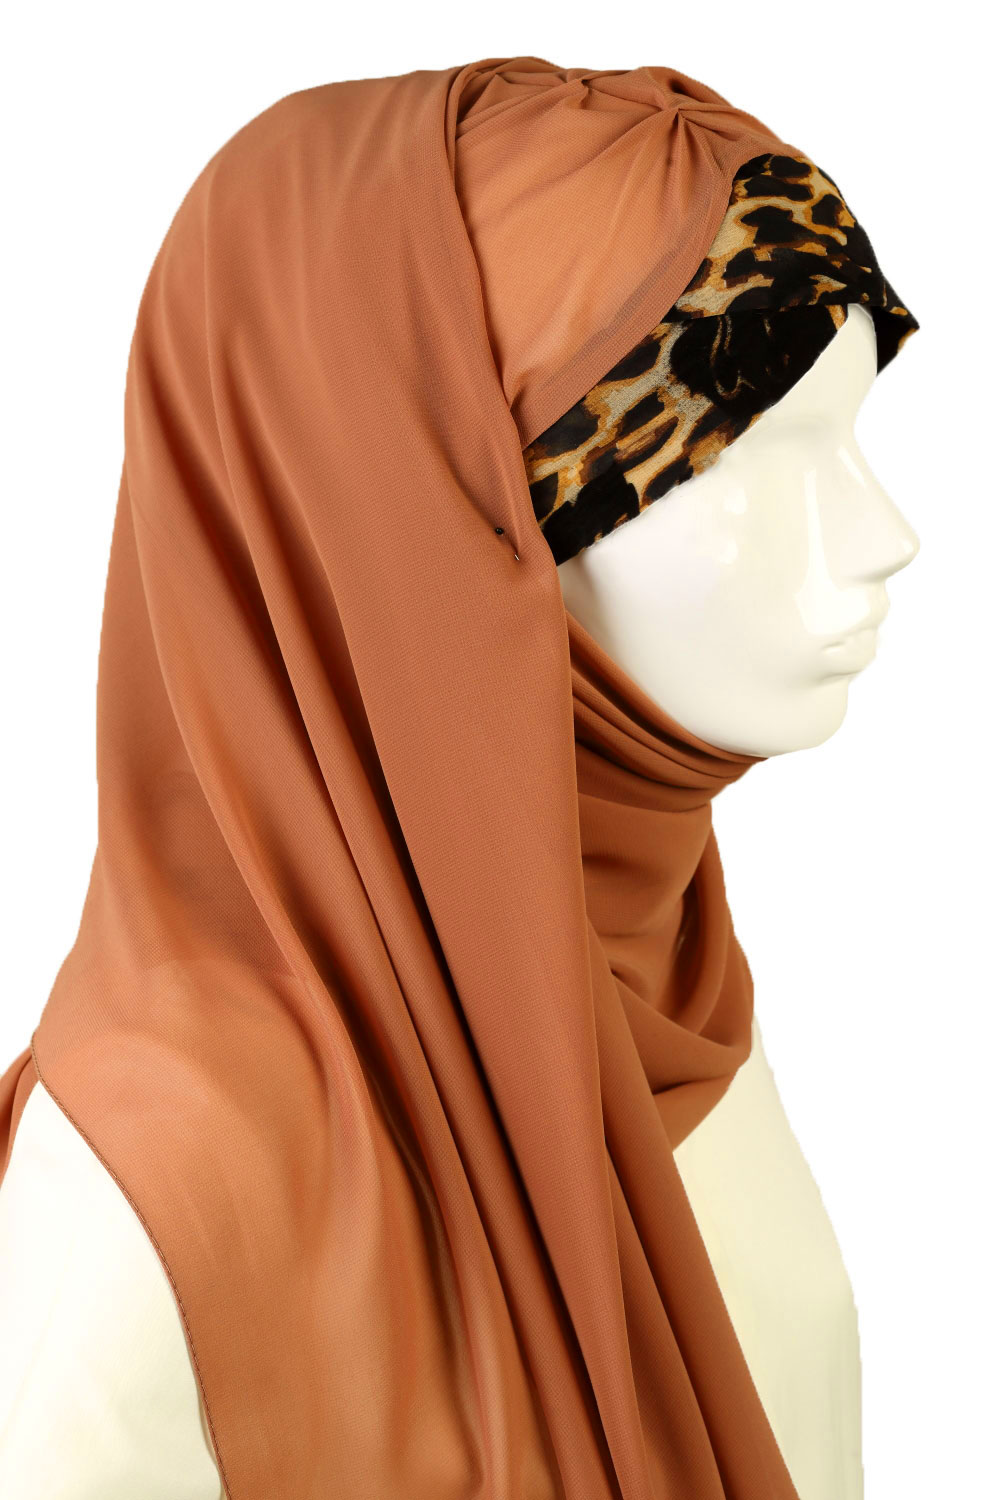 LEOPARD PATTERNED INSTANT CHIFFON SCARF